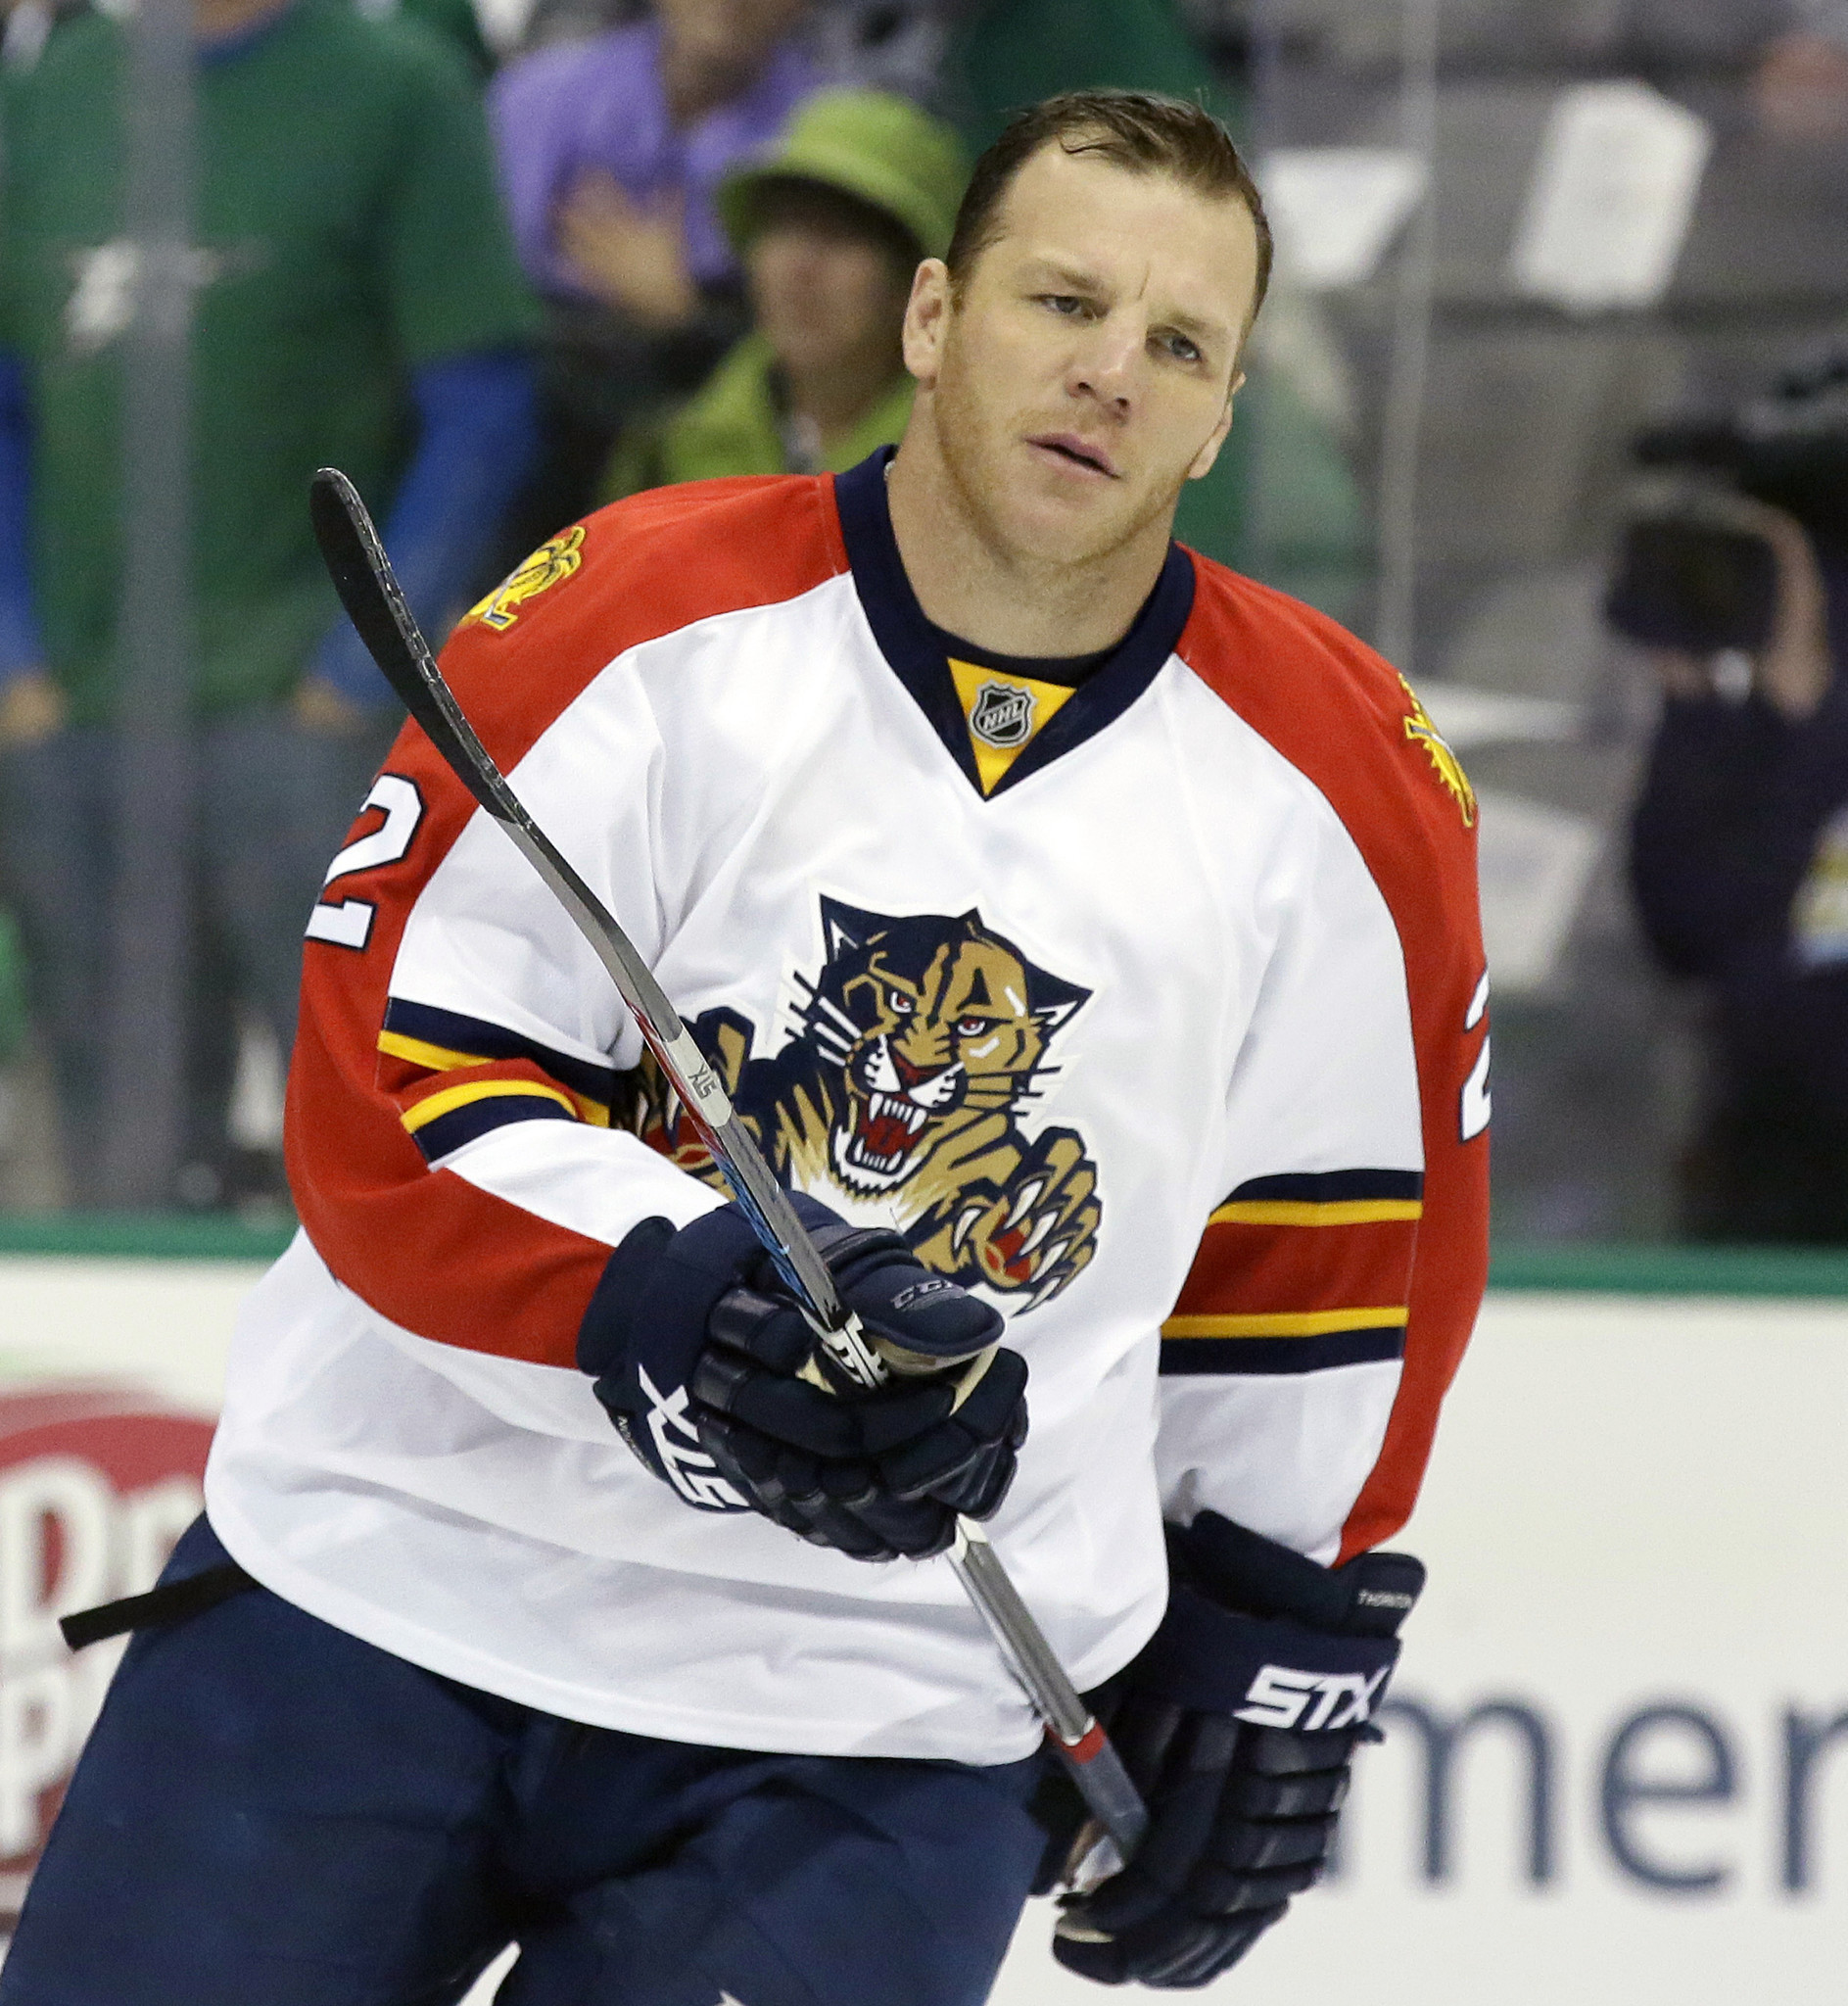 Fl-sp-panthers-shawn-thornton-vp-business-operations-060117